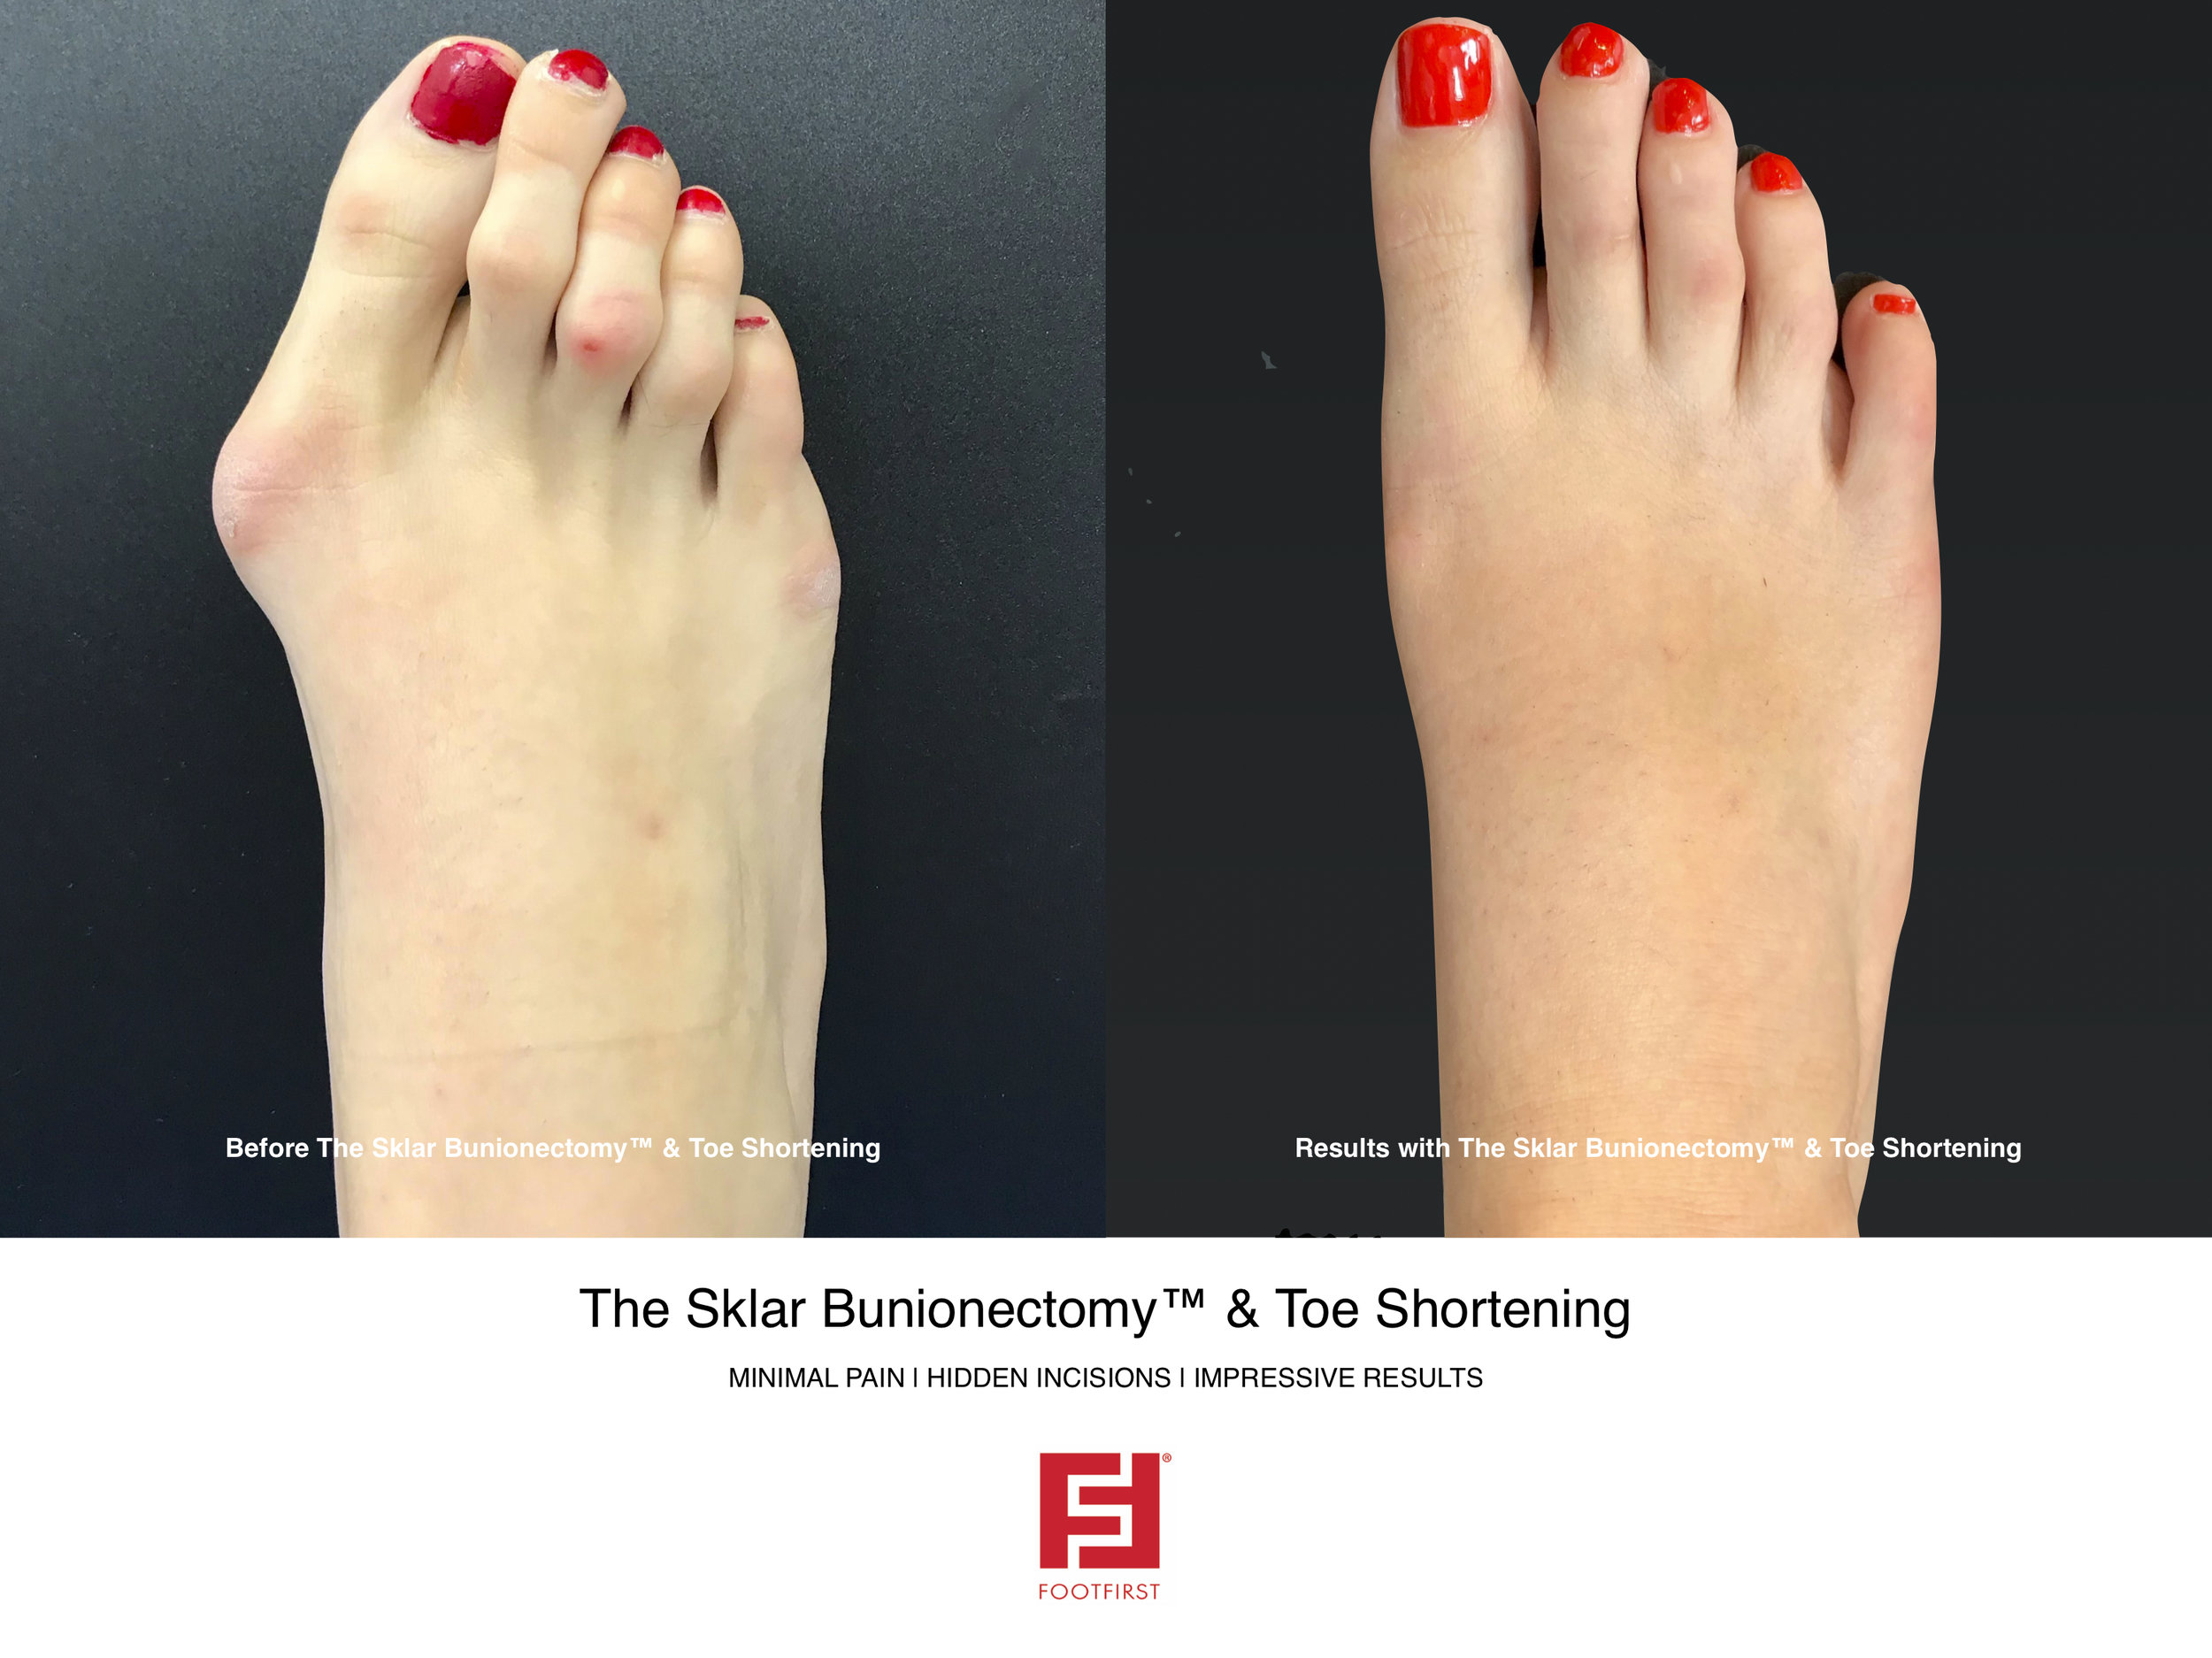 FF | www.footfirst.com - The Sklar Bunionectomy & Toe Shortening 2.jpg